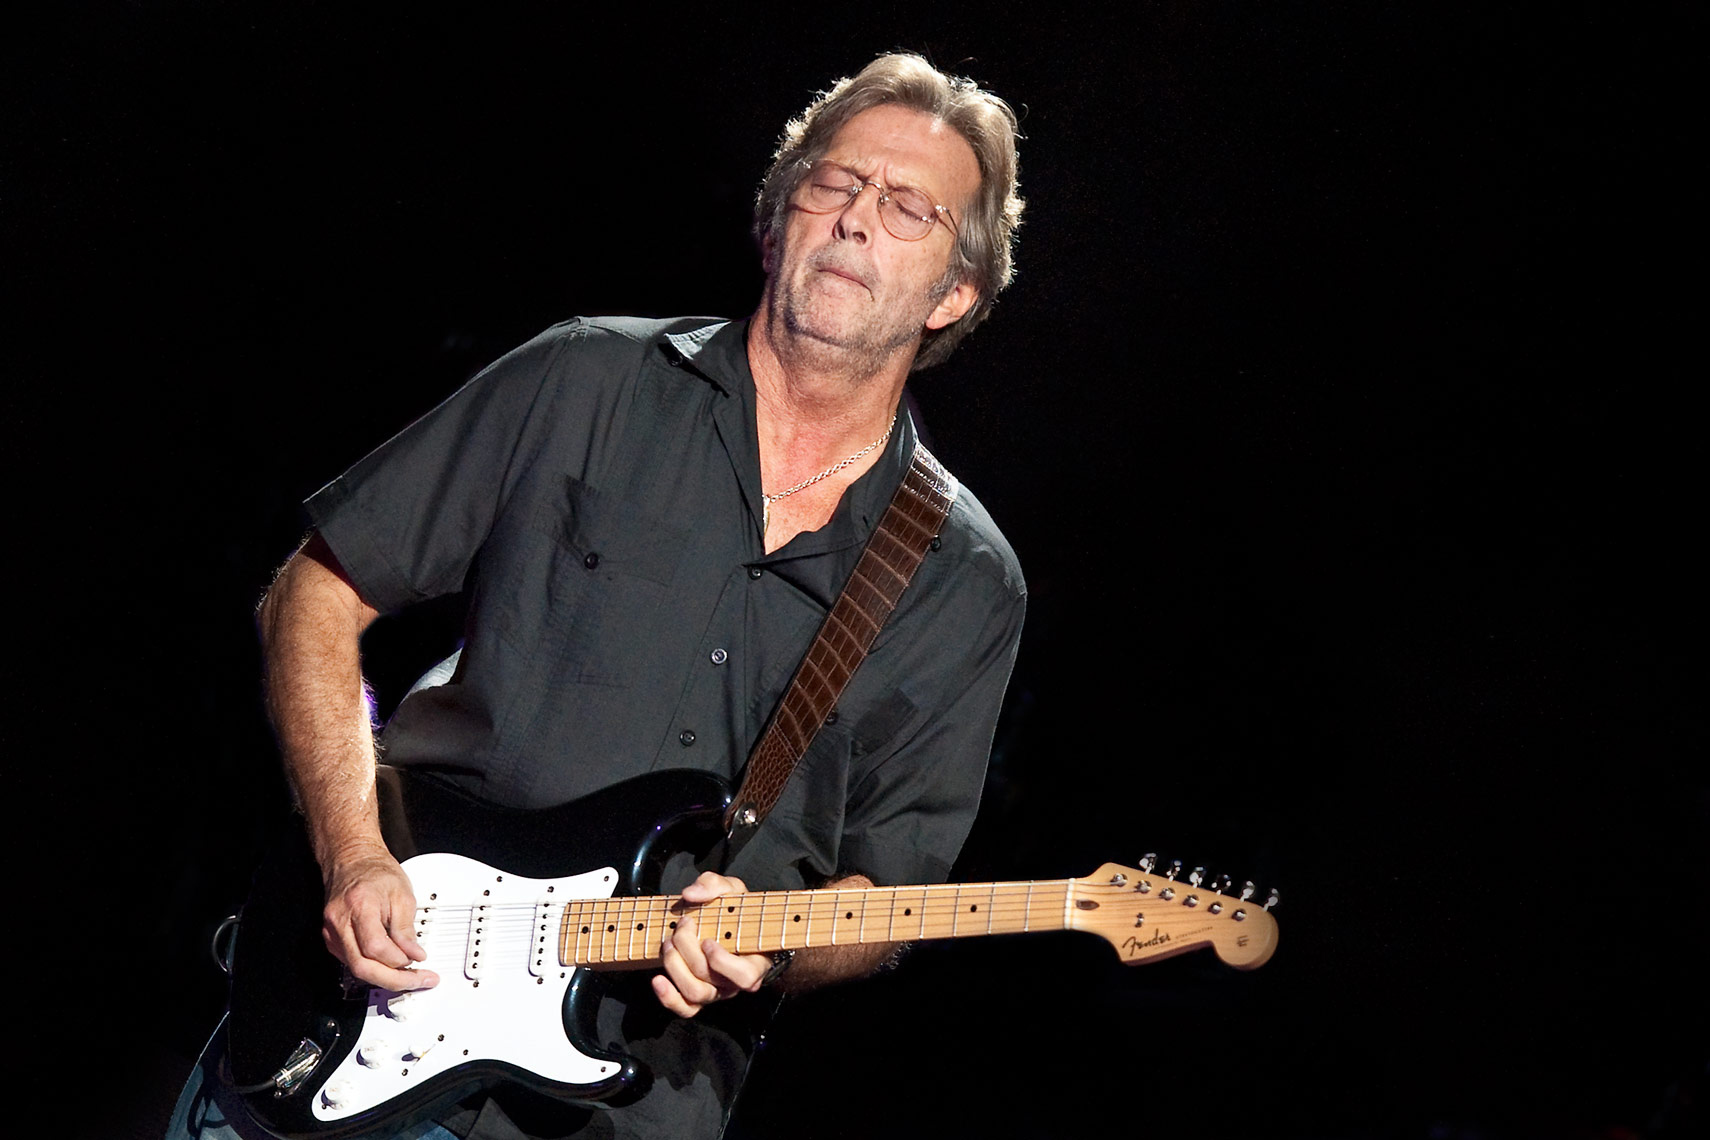 Eric-Clapton-Royal-Albert-Hall.jpg